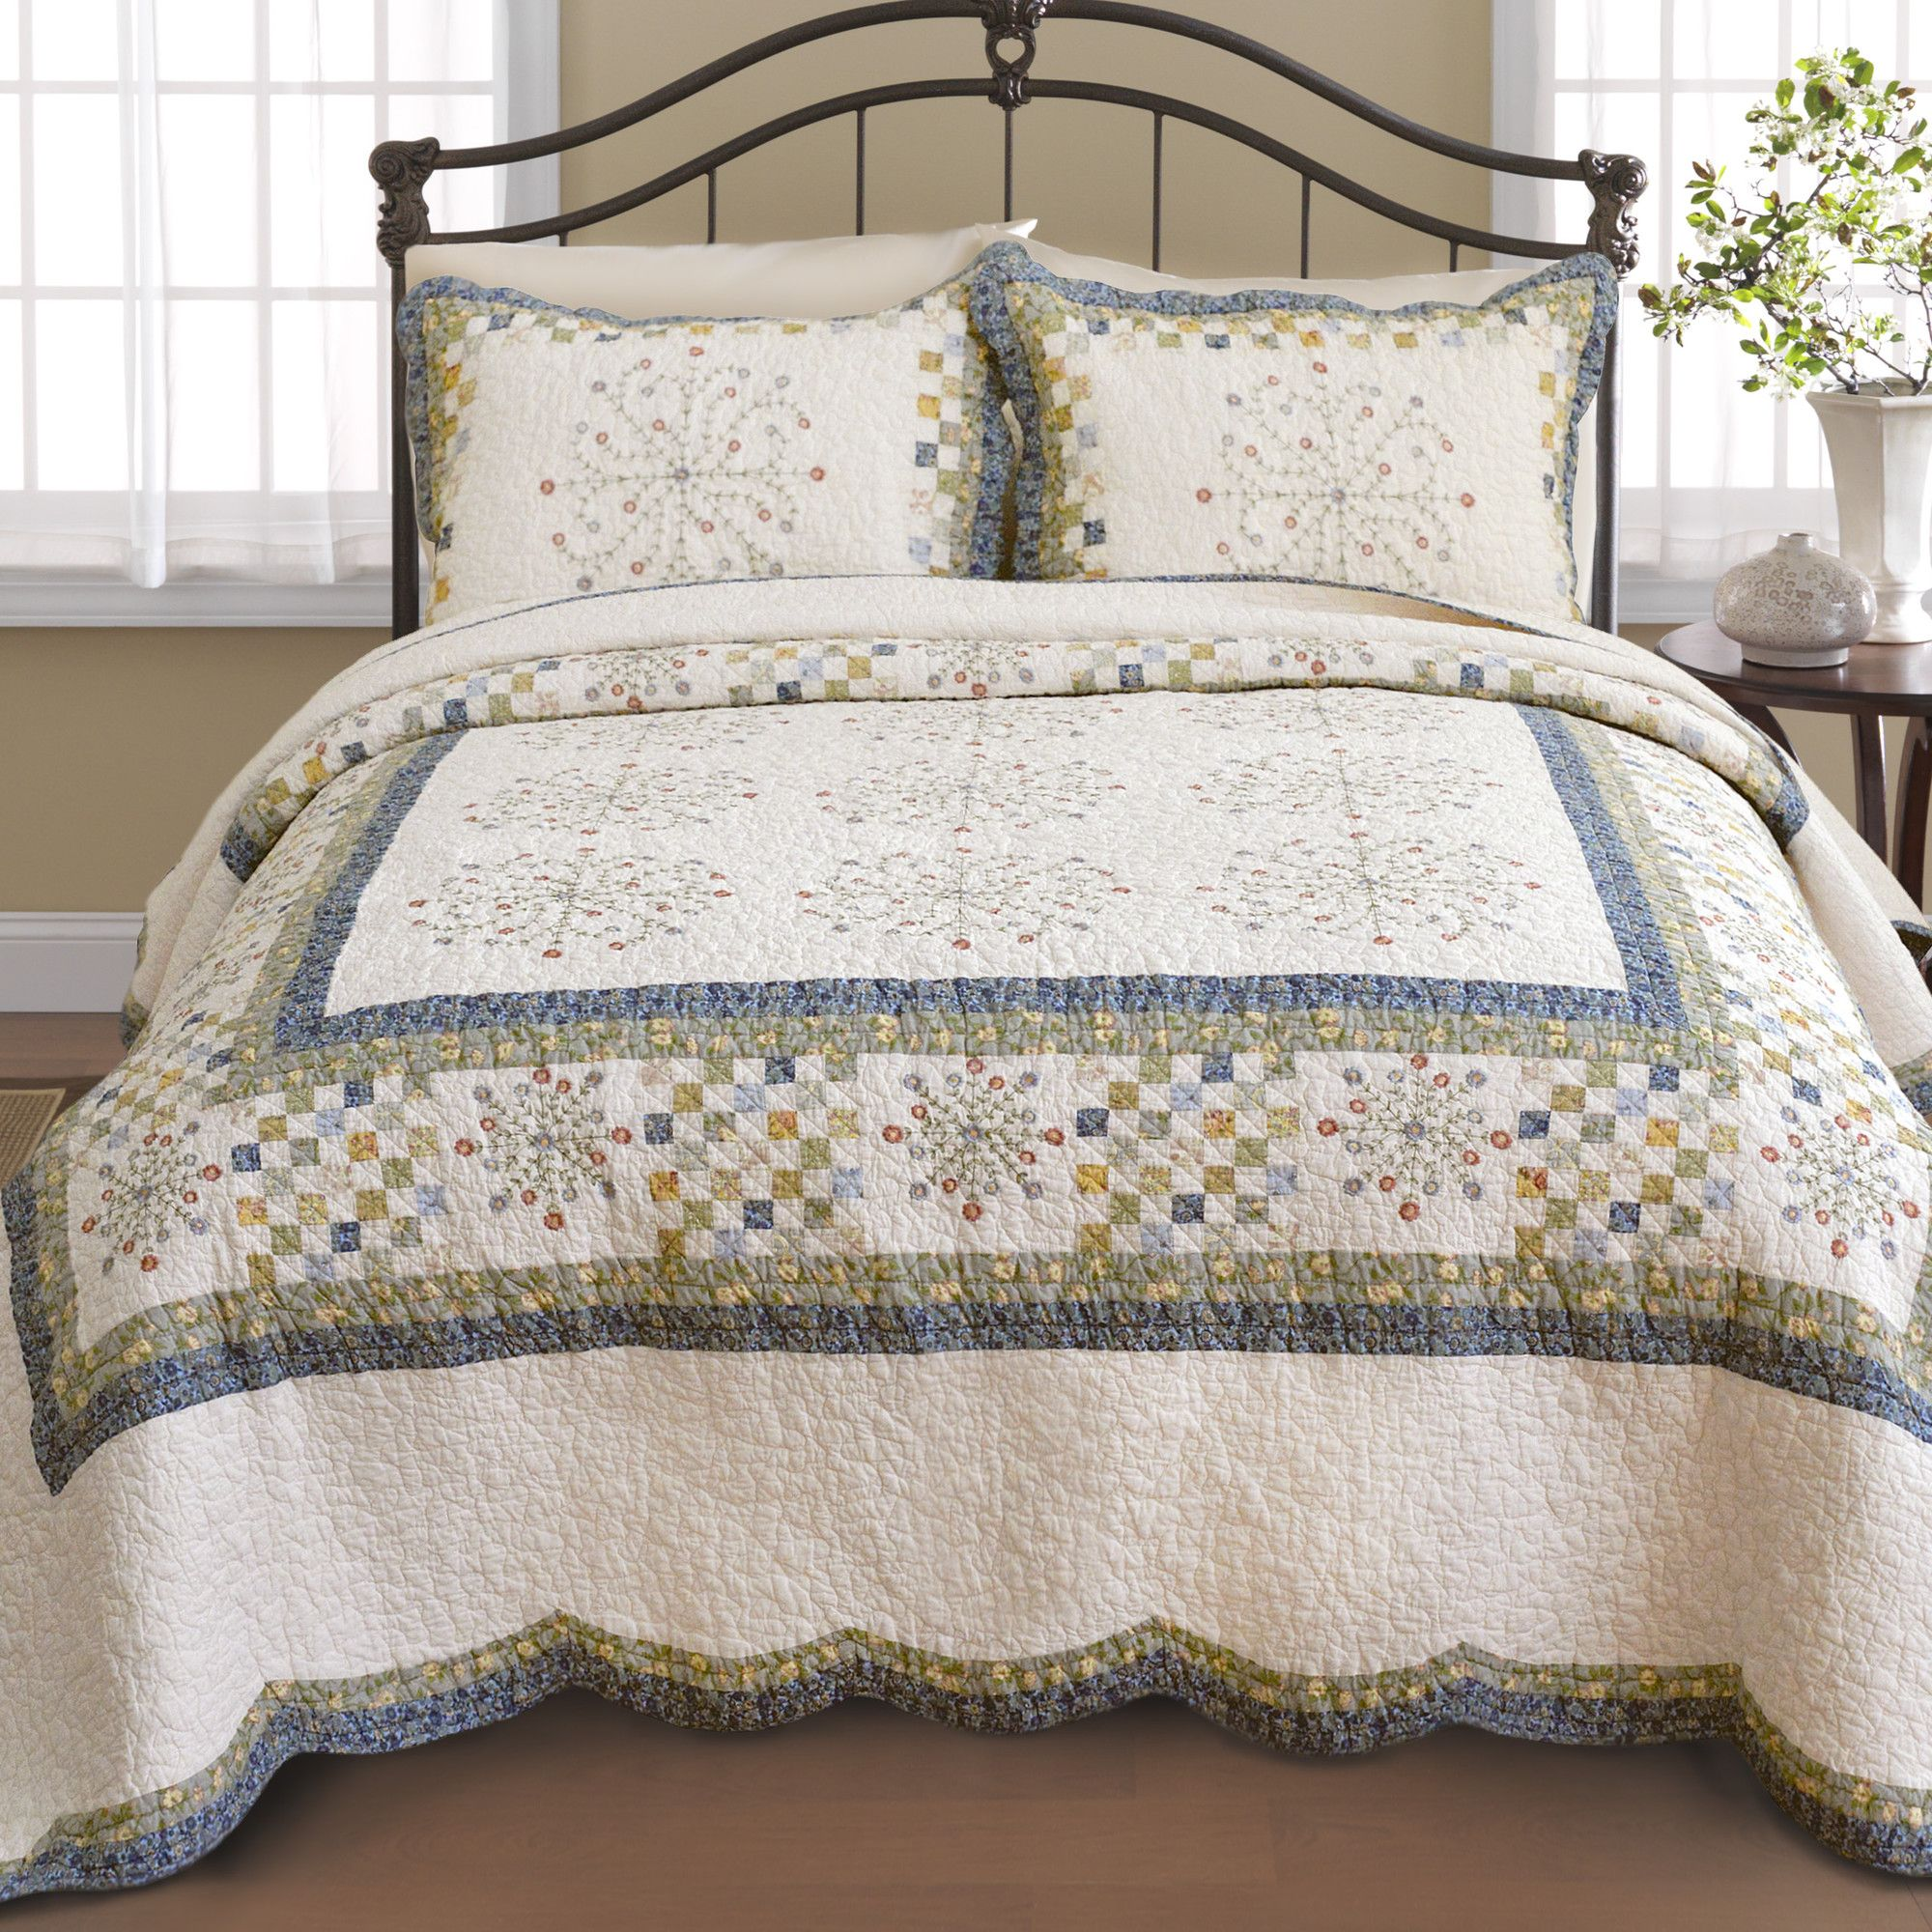 Nostalgia Home Emily Bedspread & Reviews - Wayfair